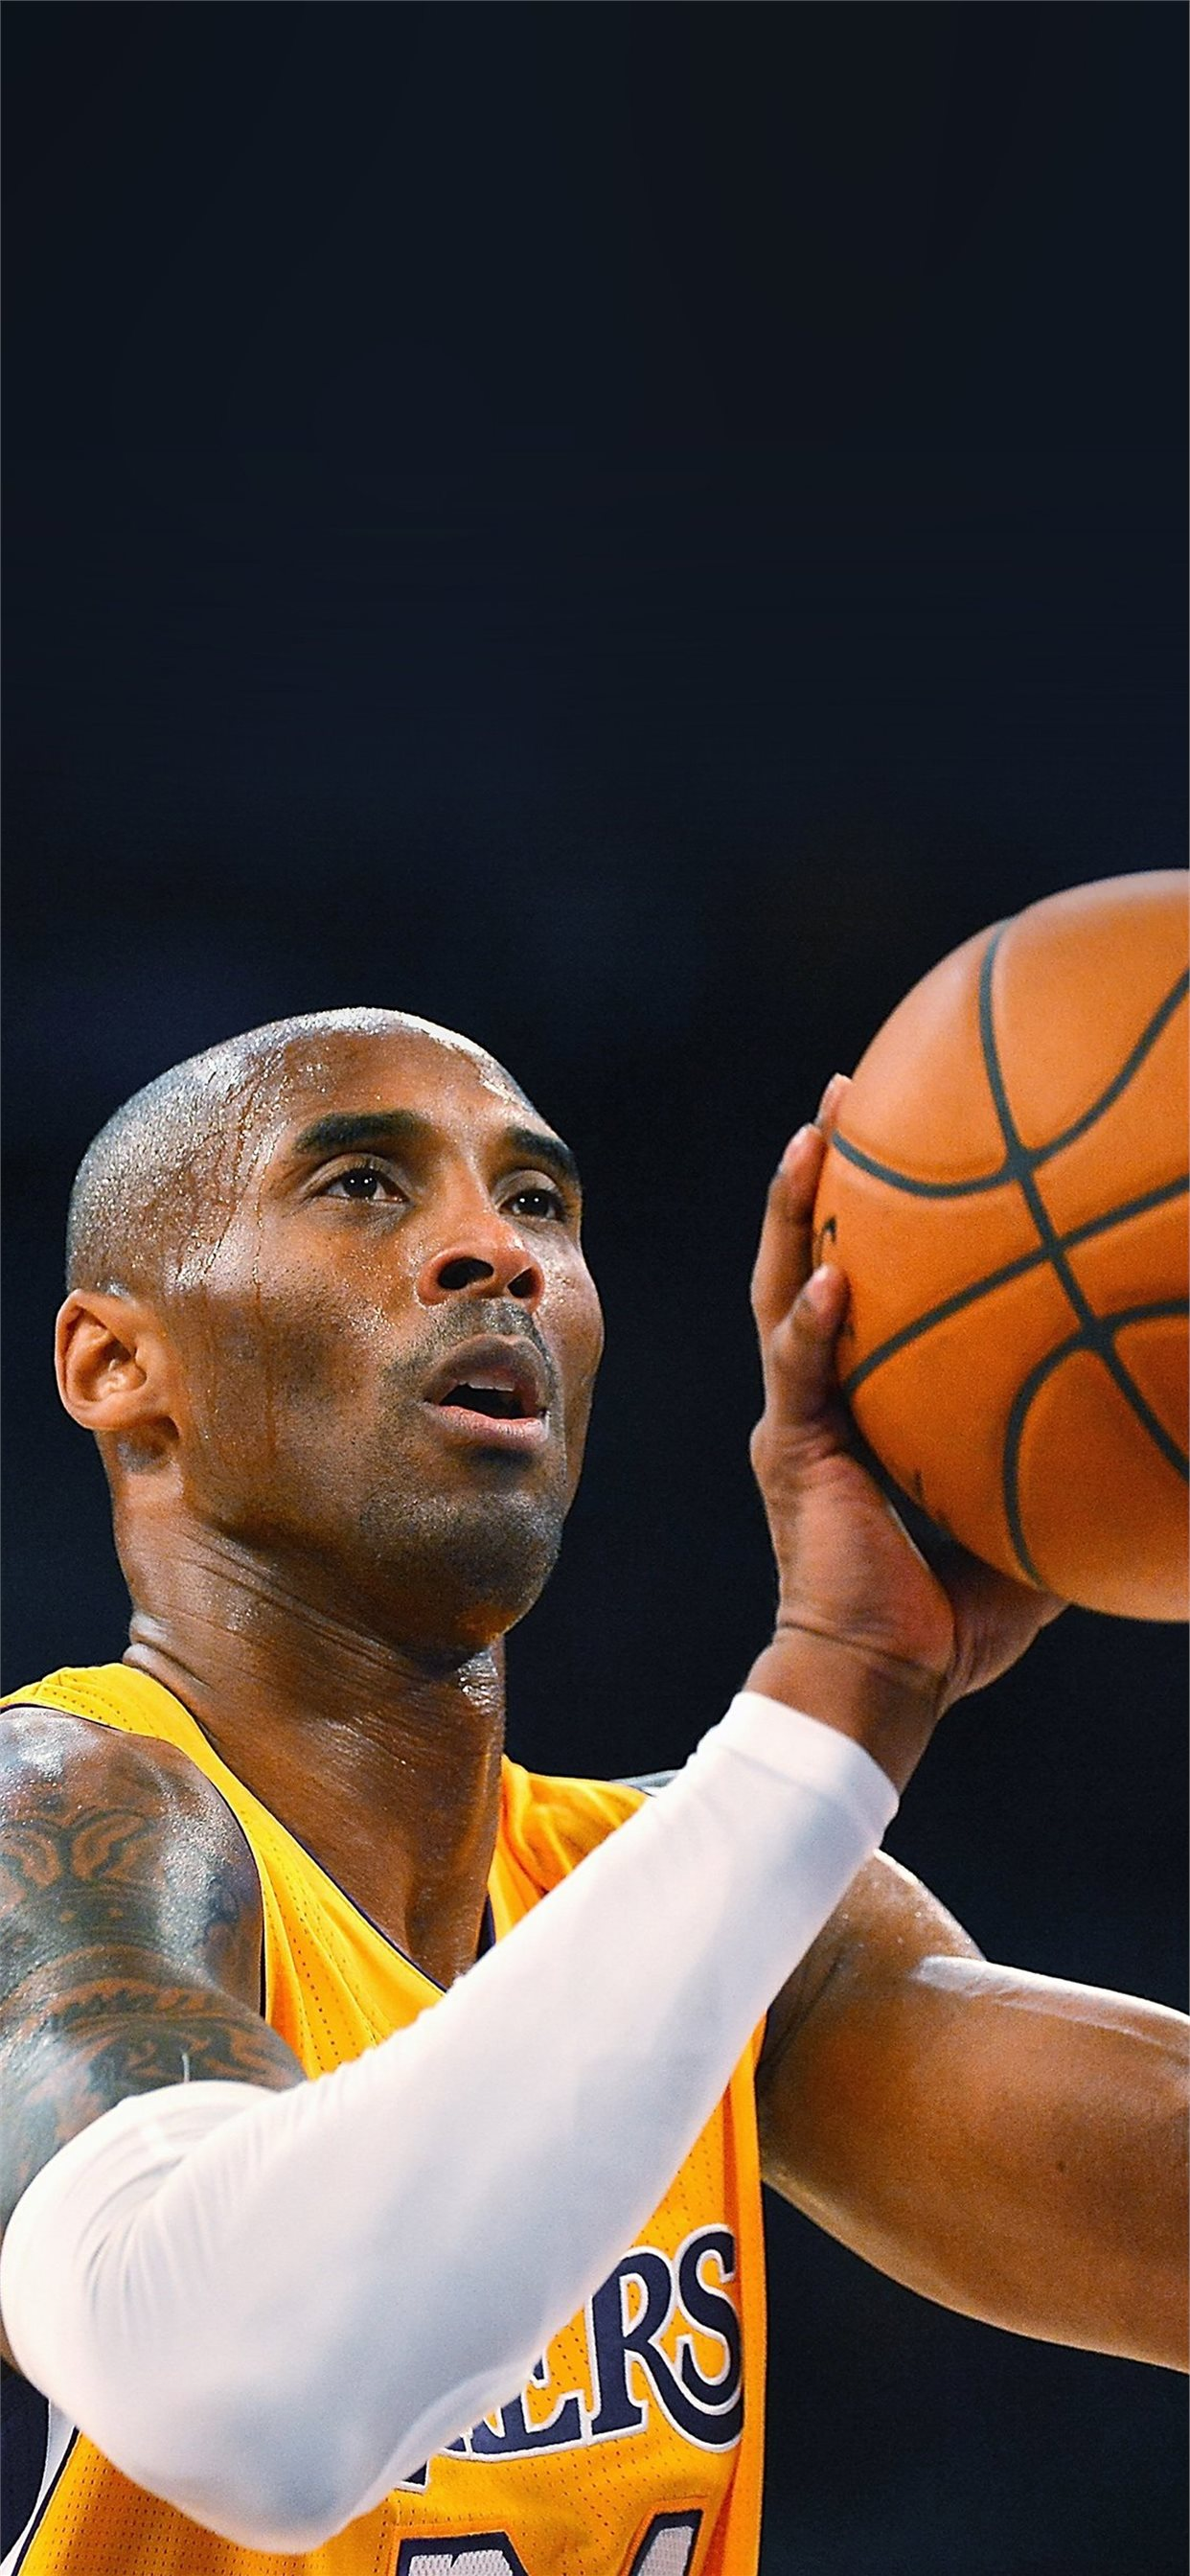 Kobe Bryant Iphone Wallpapers Free Download